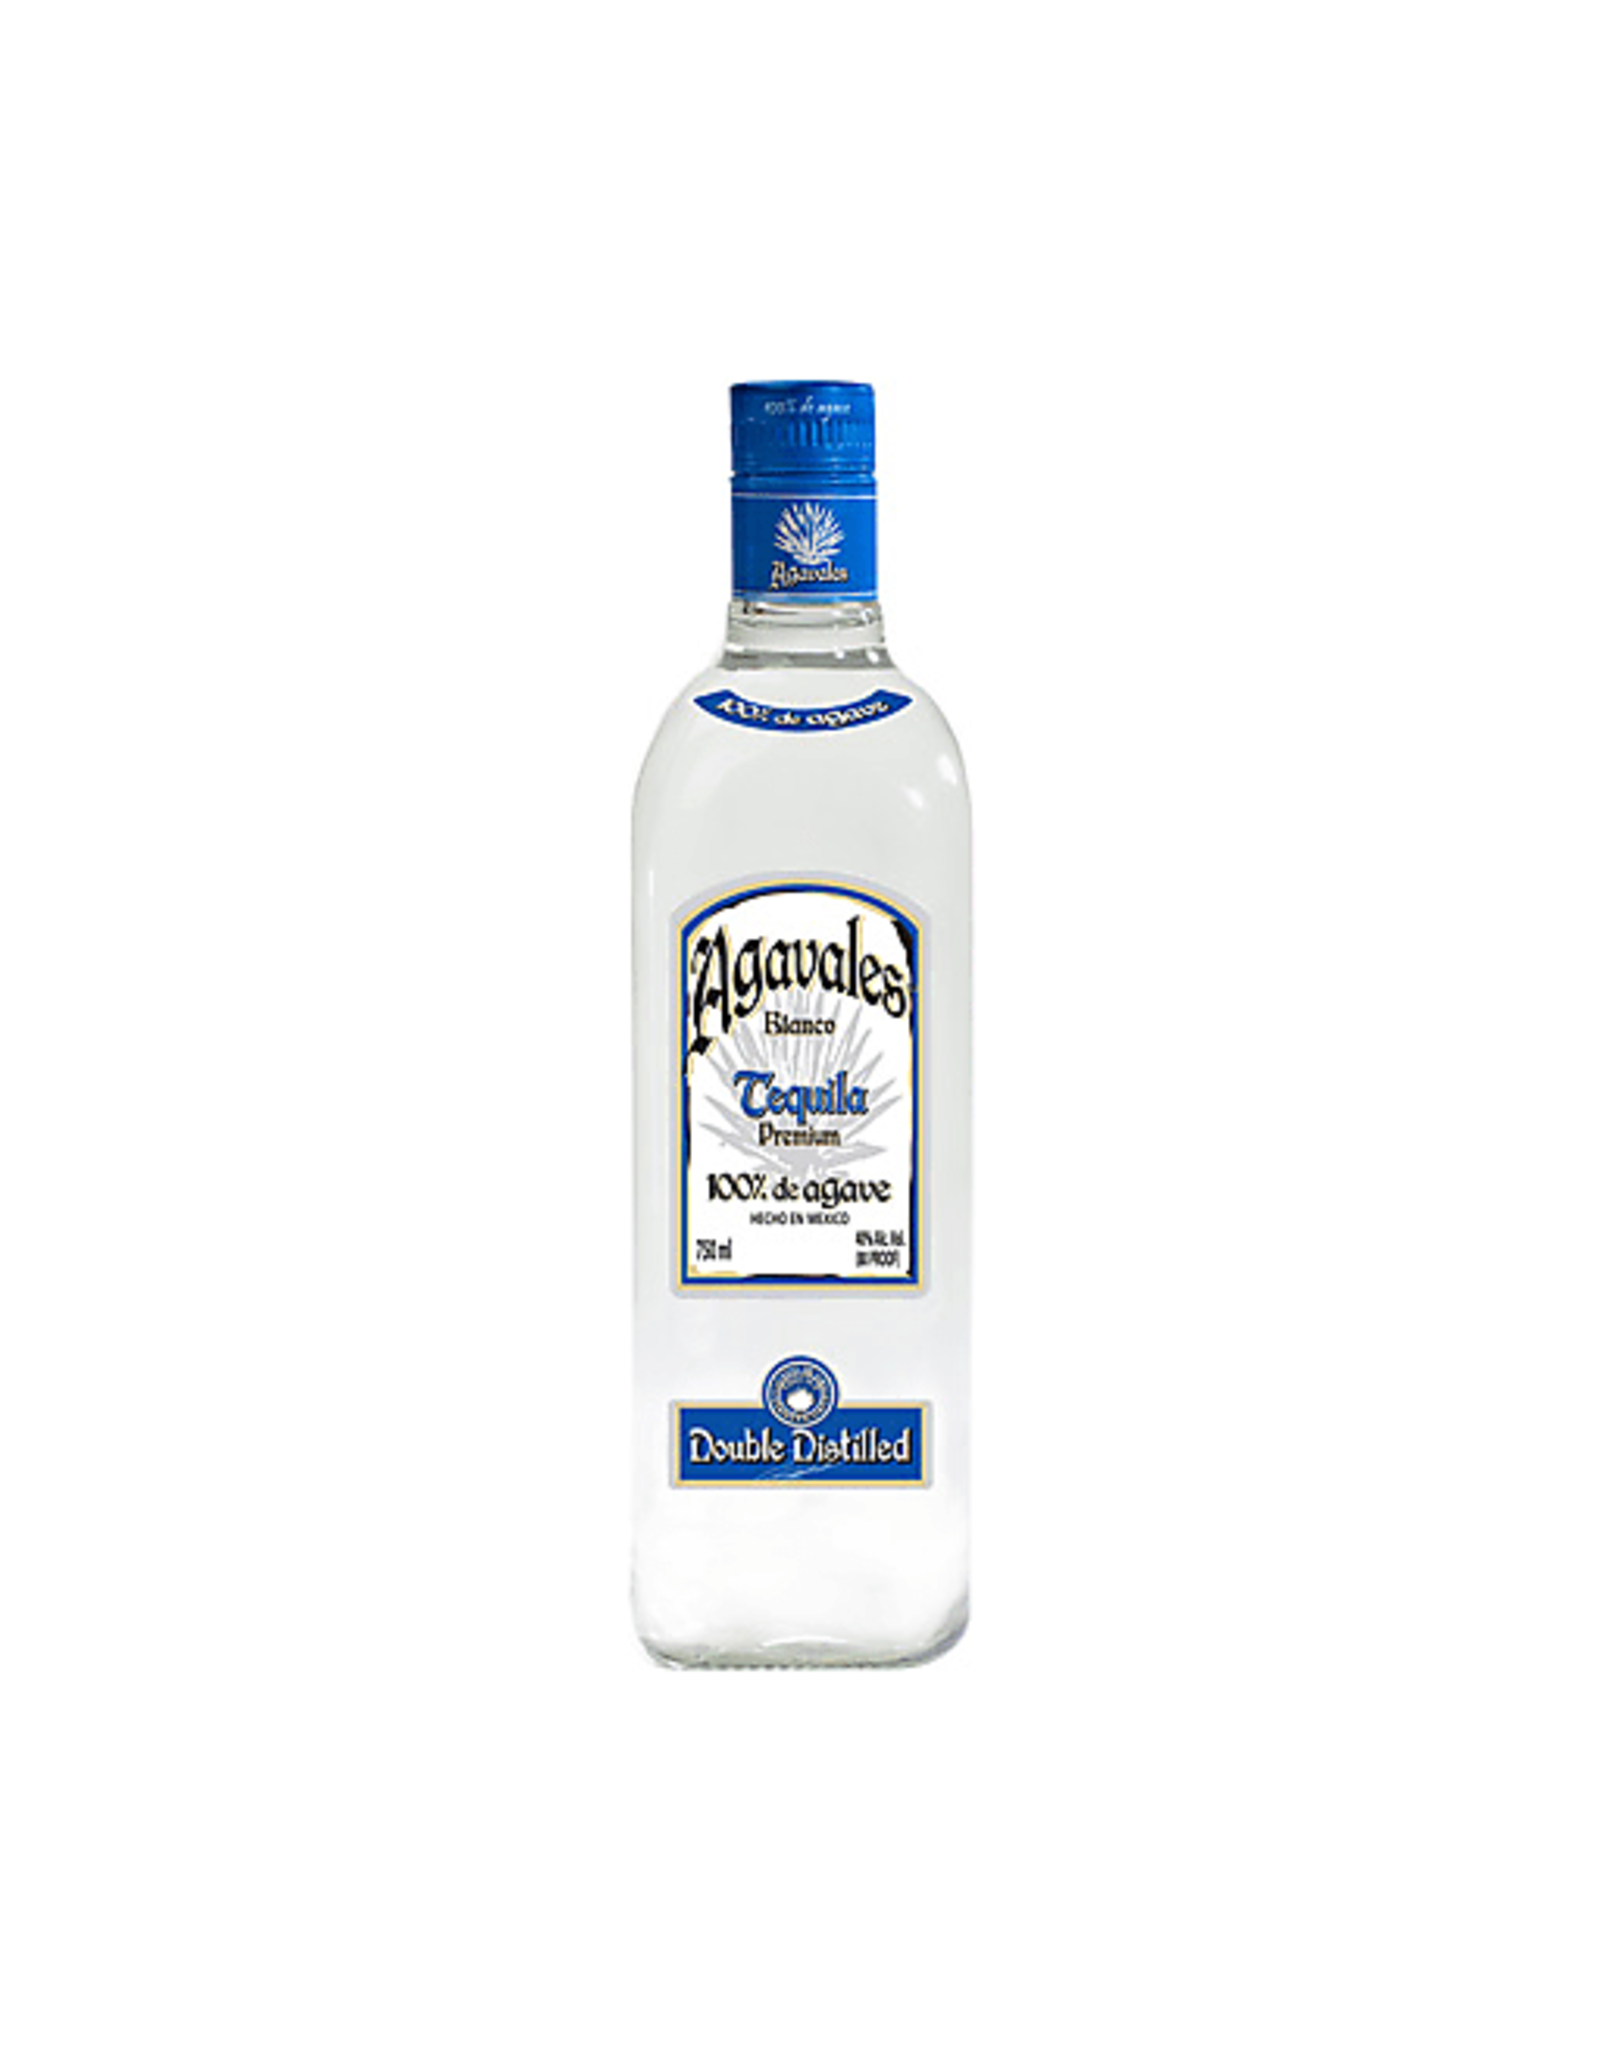 AGAVALES SILVER TEQUILA 750ML